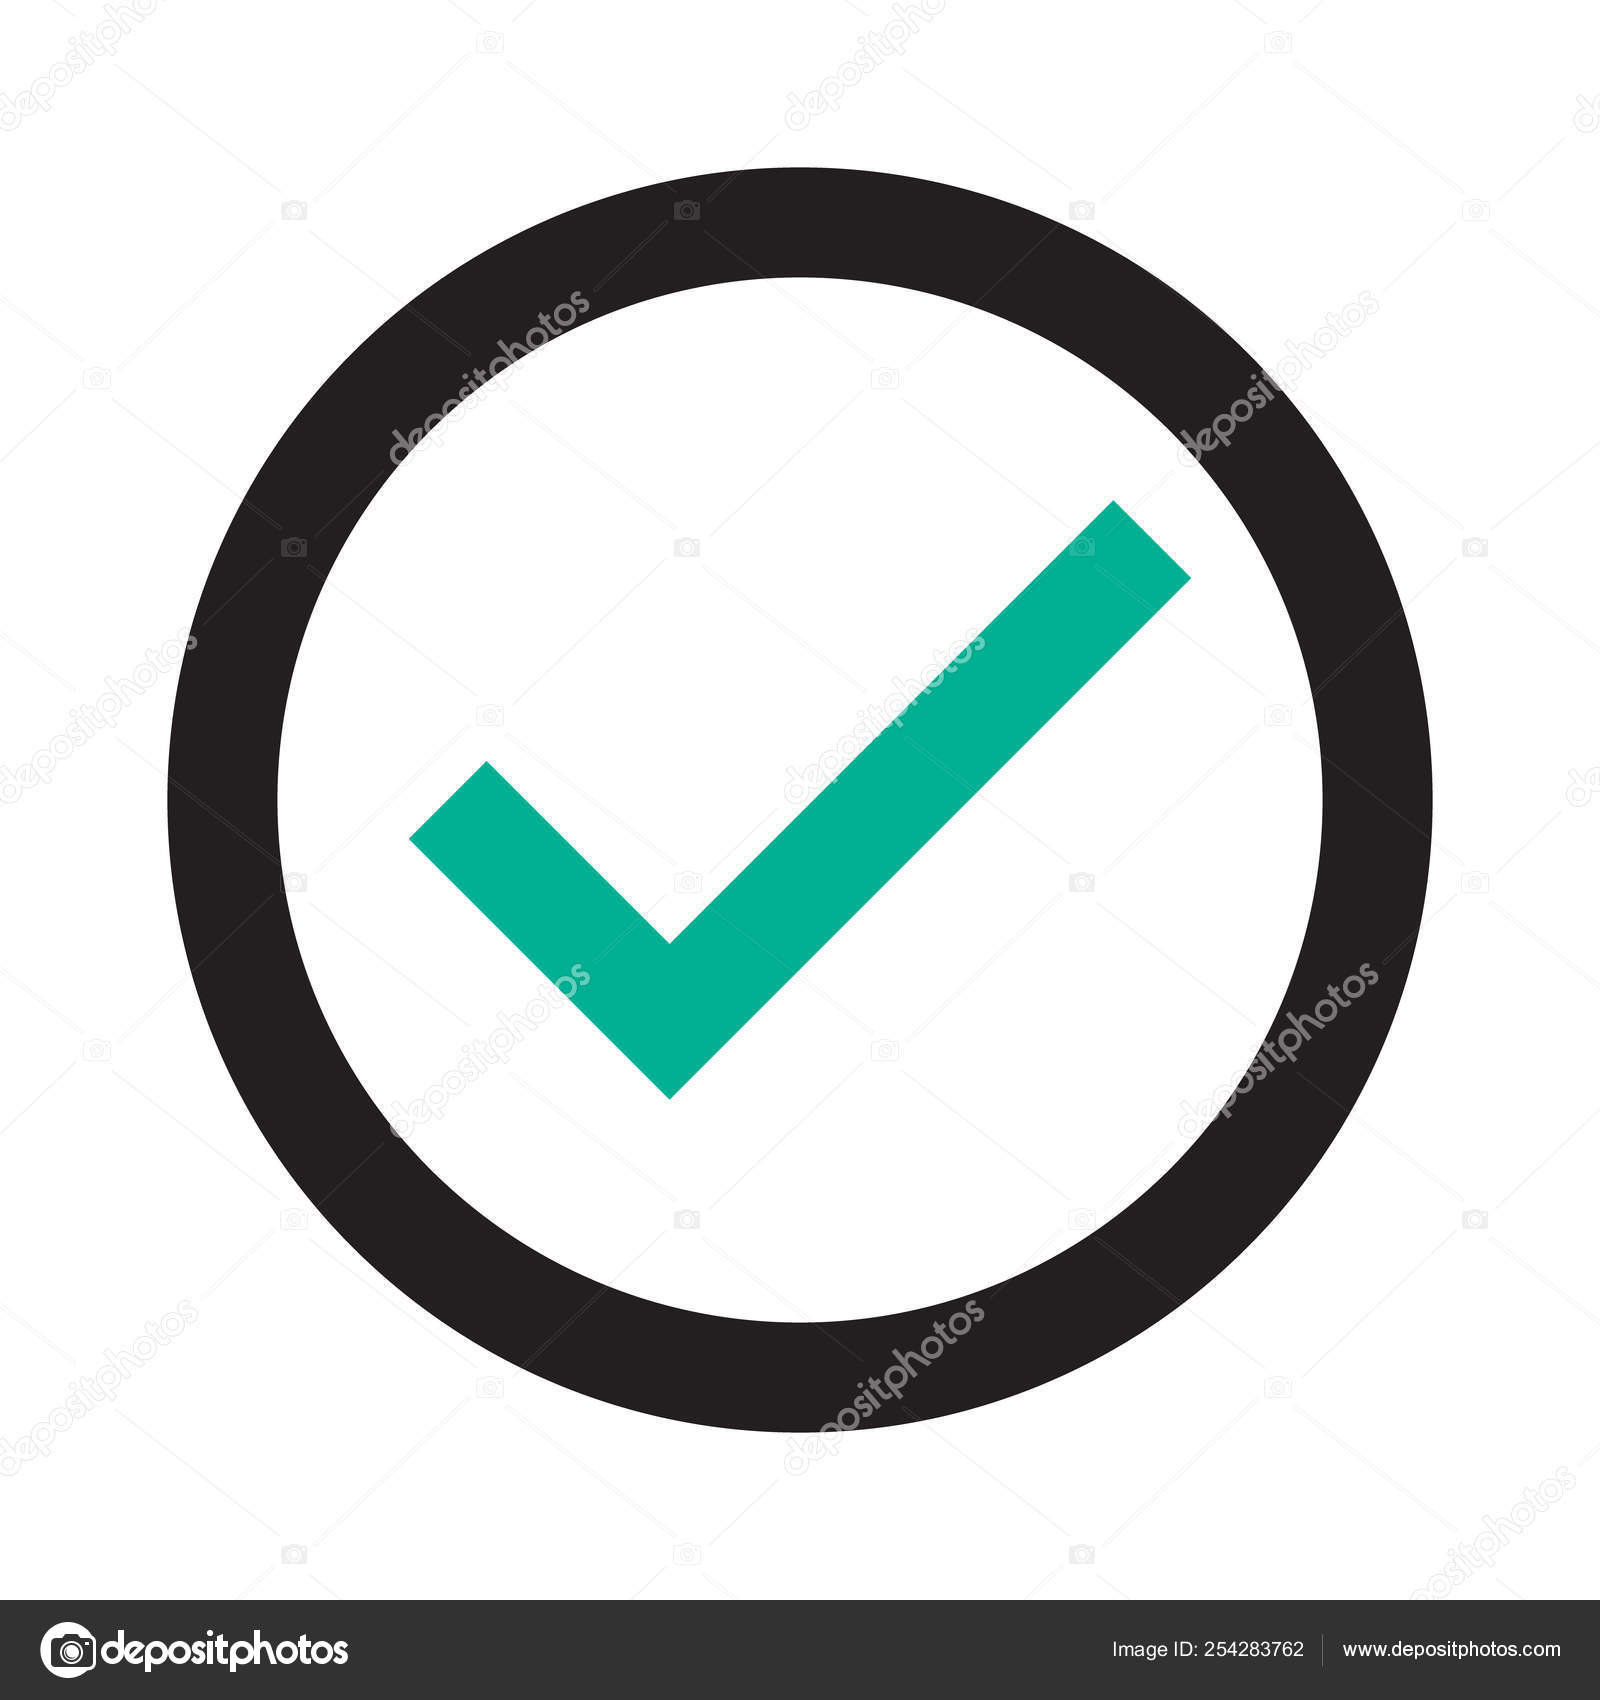 Check mark icon  Check mark logo vector or icon  Tick symbol in